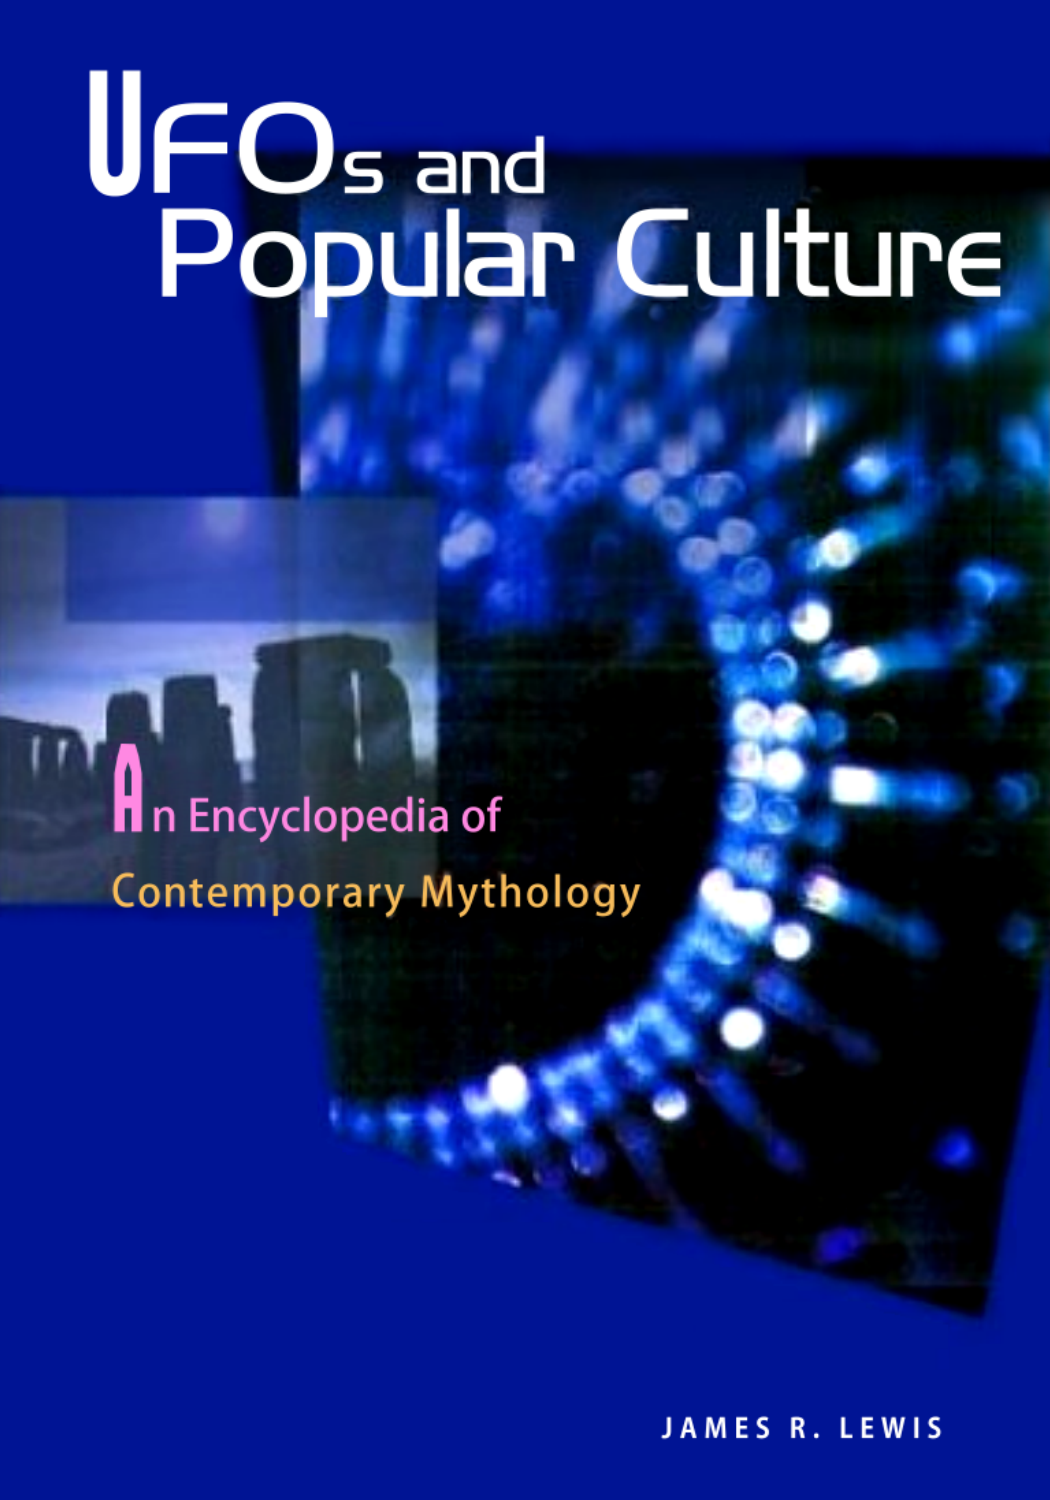 James R  Lewis - UFOs and Popular Culture